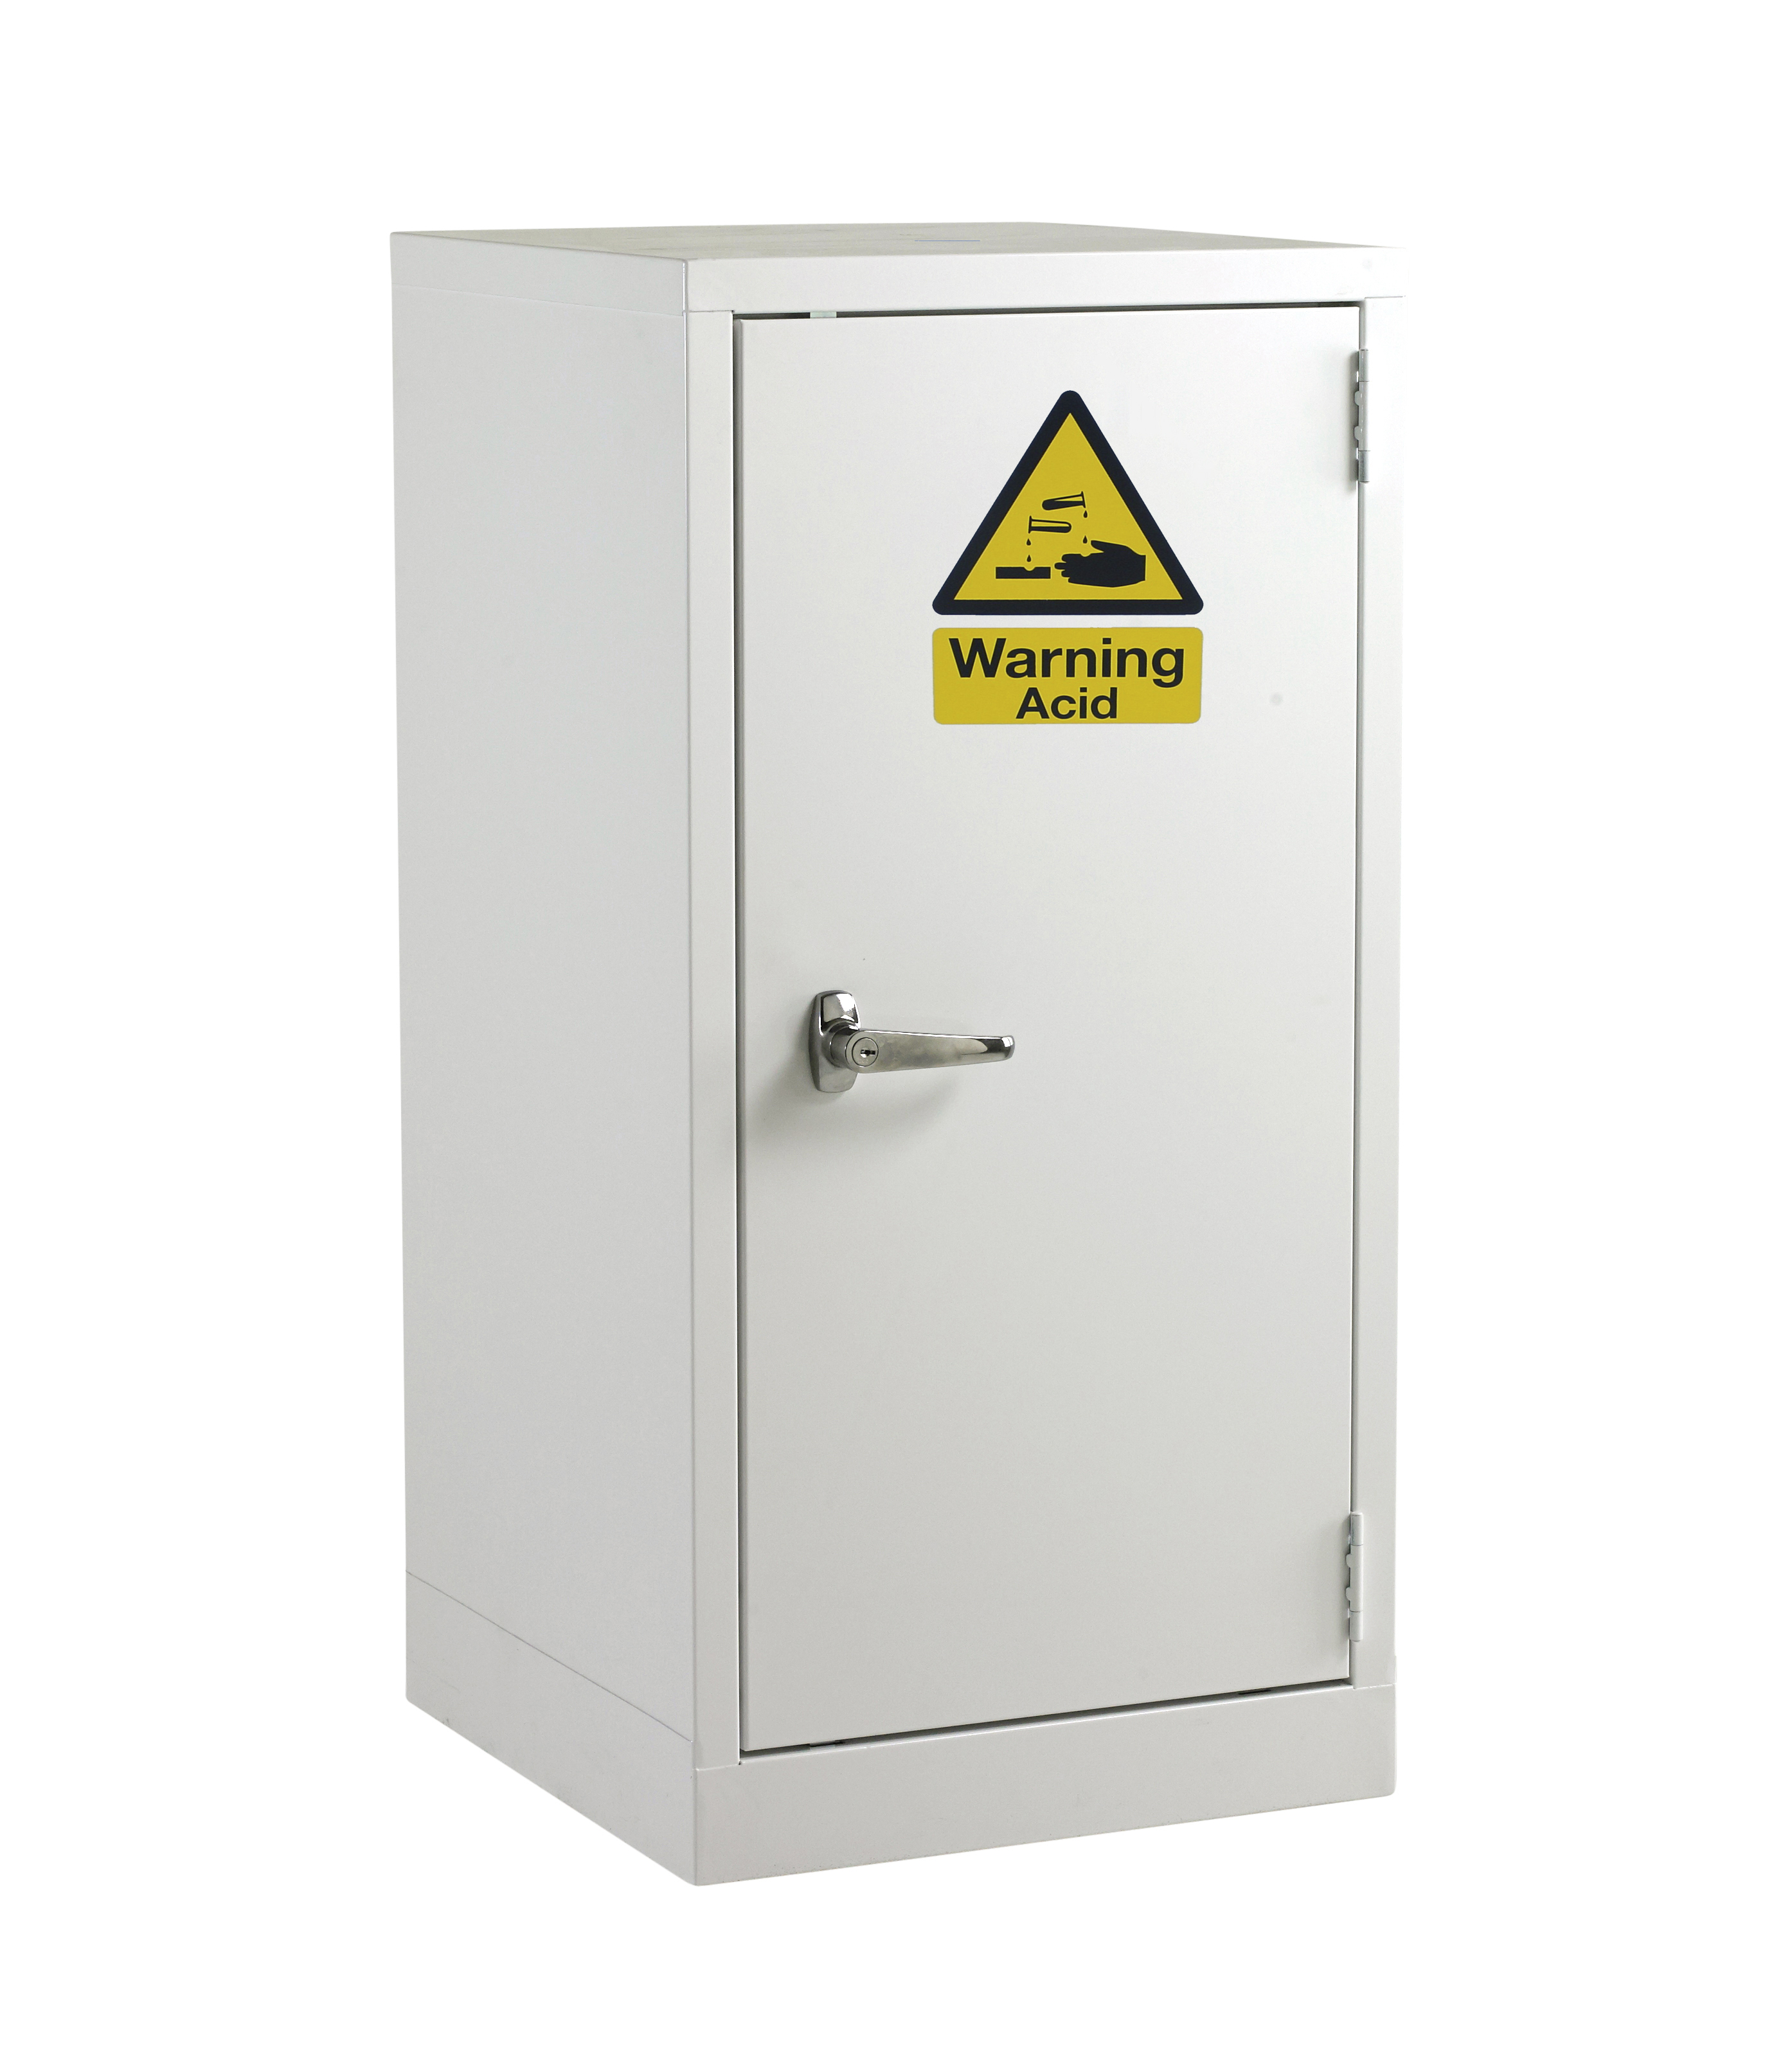 White Acid Hazardous Cabinet by Step and Store